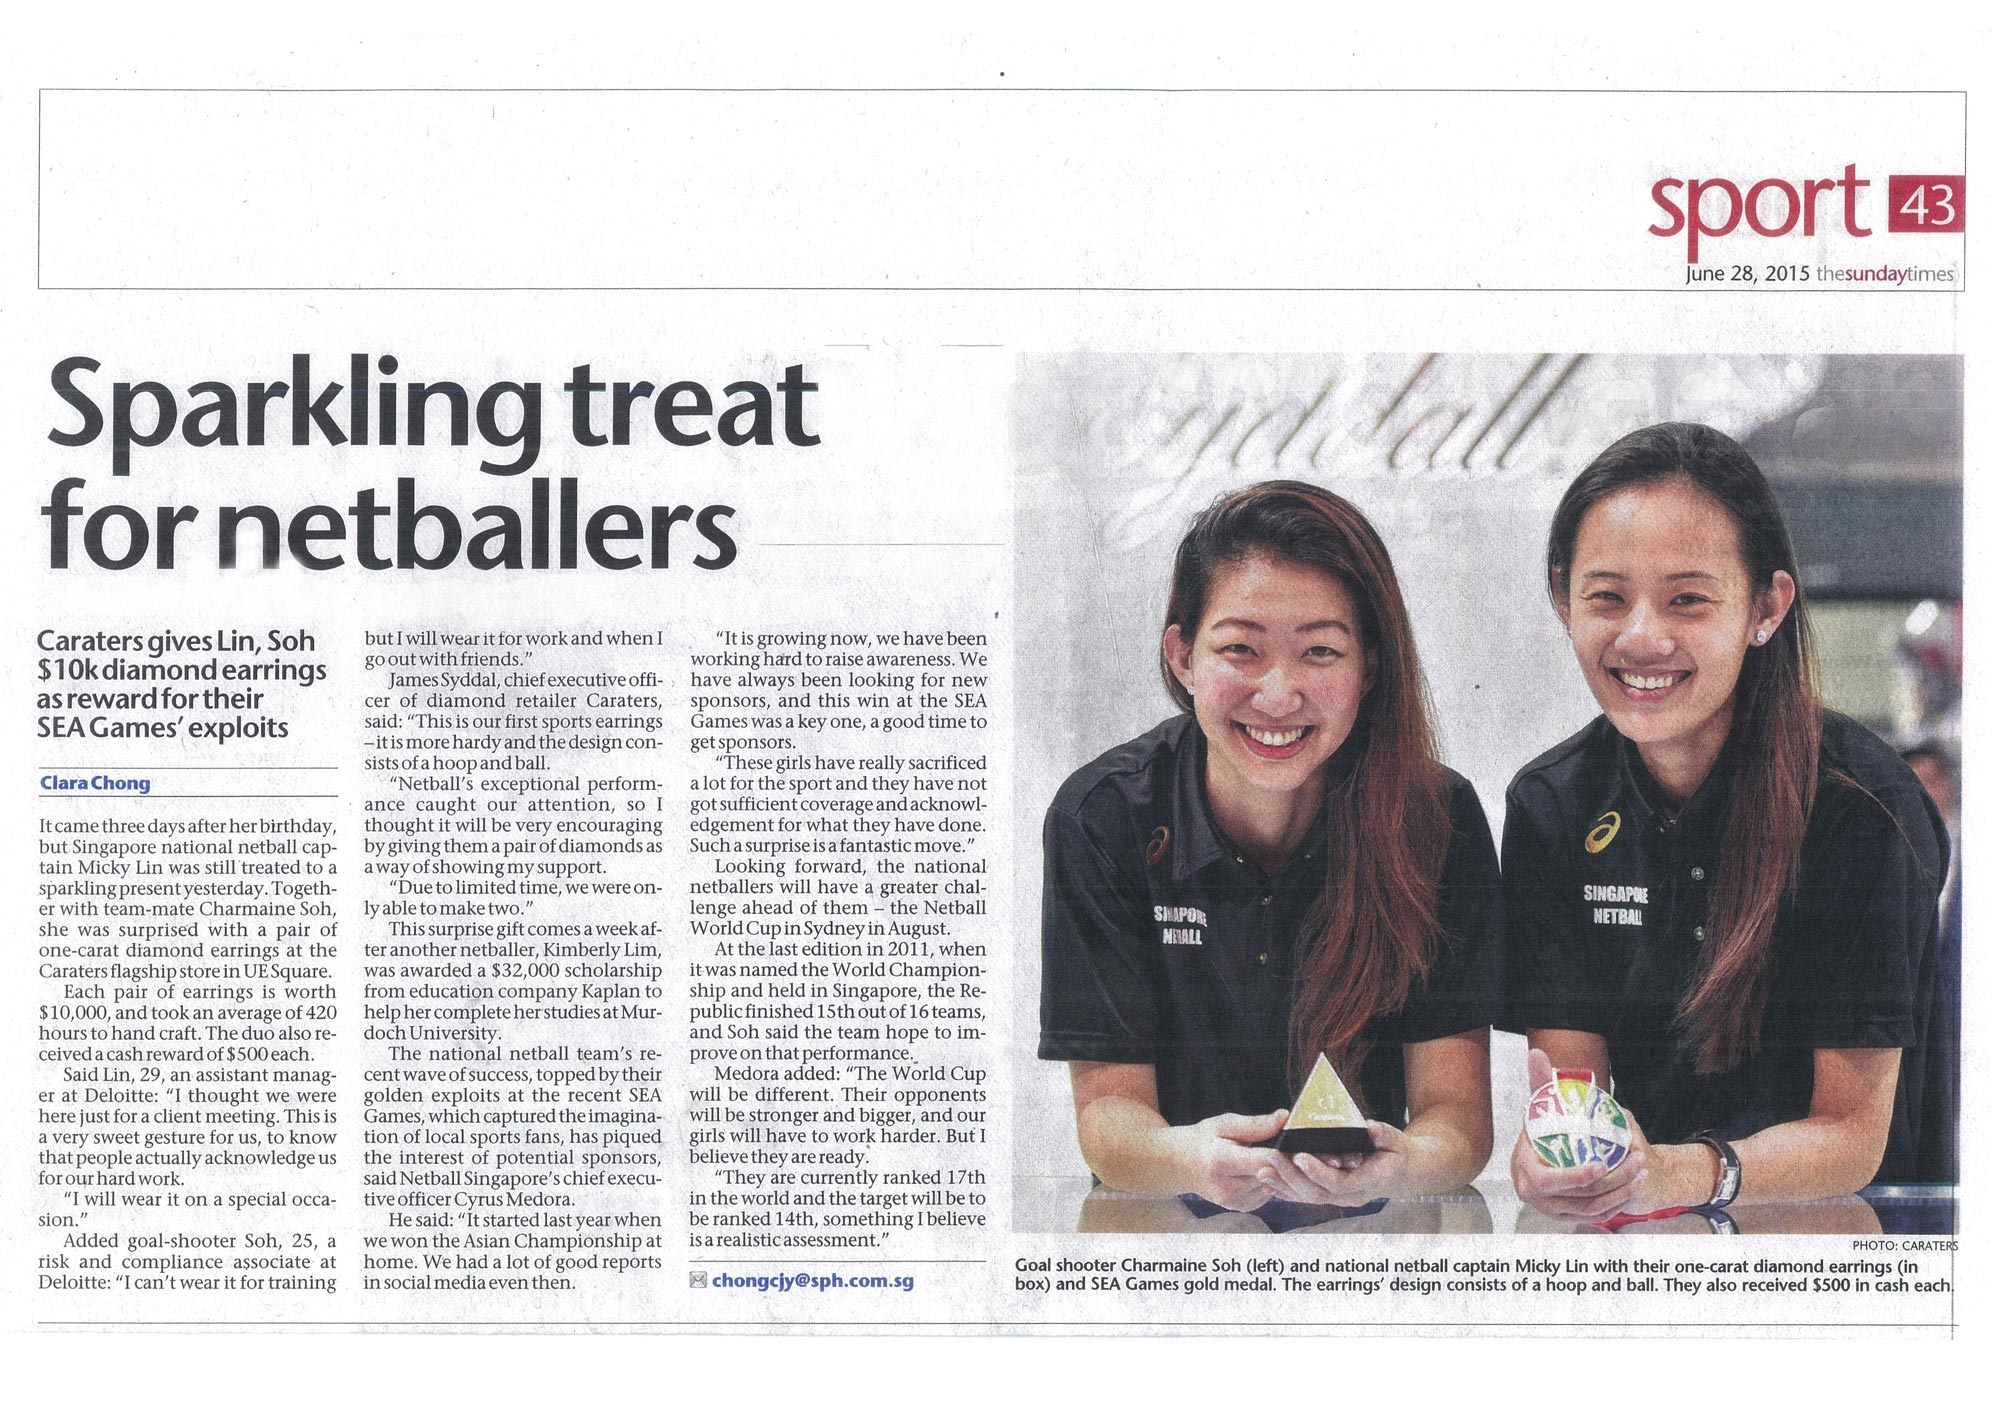 SPARKLING TREAT FOR NETBALLERS